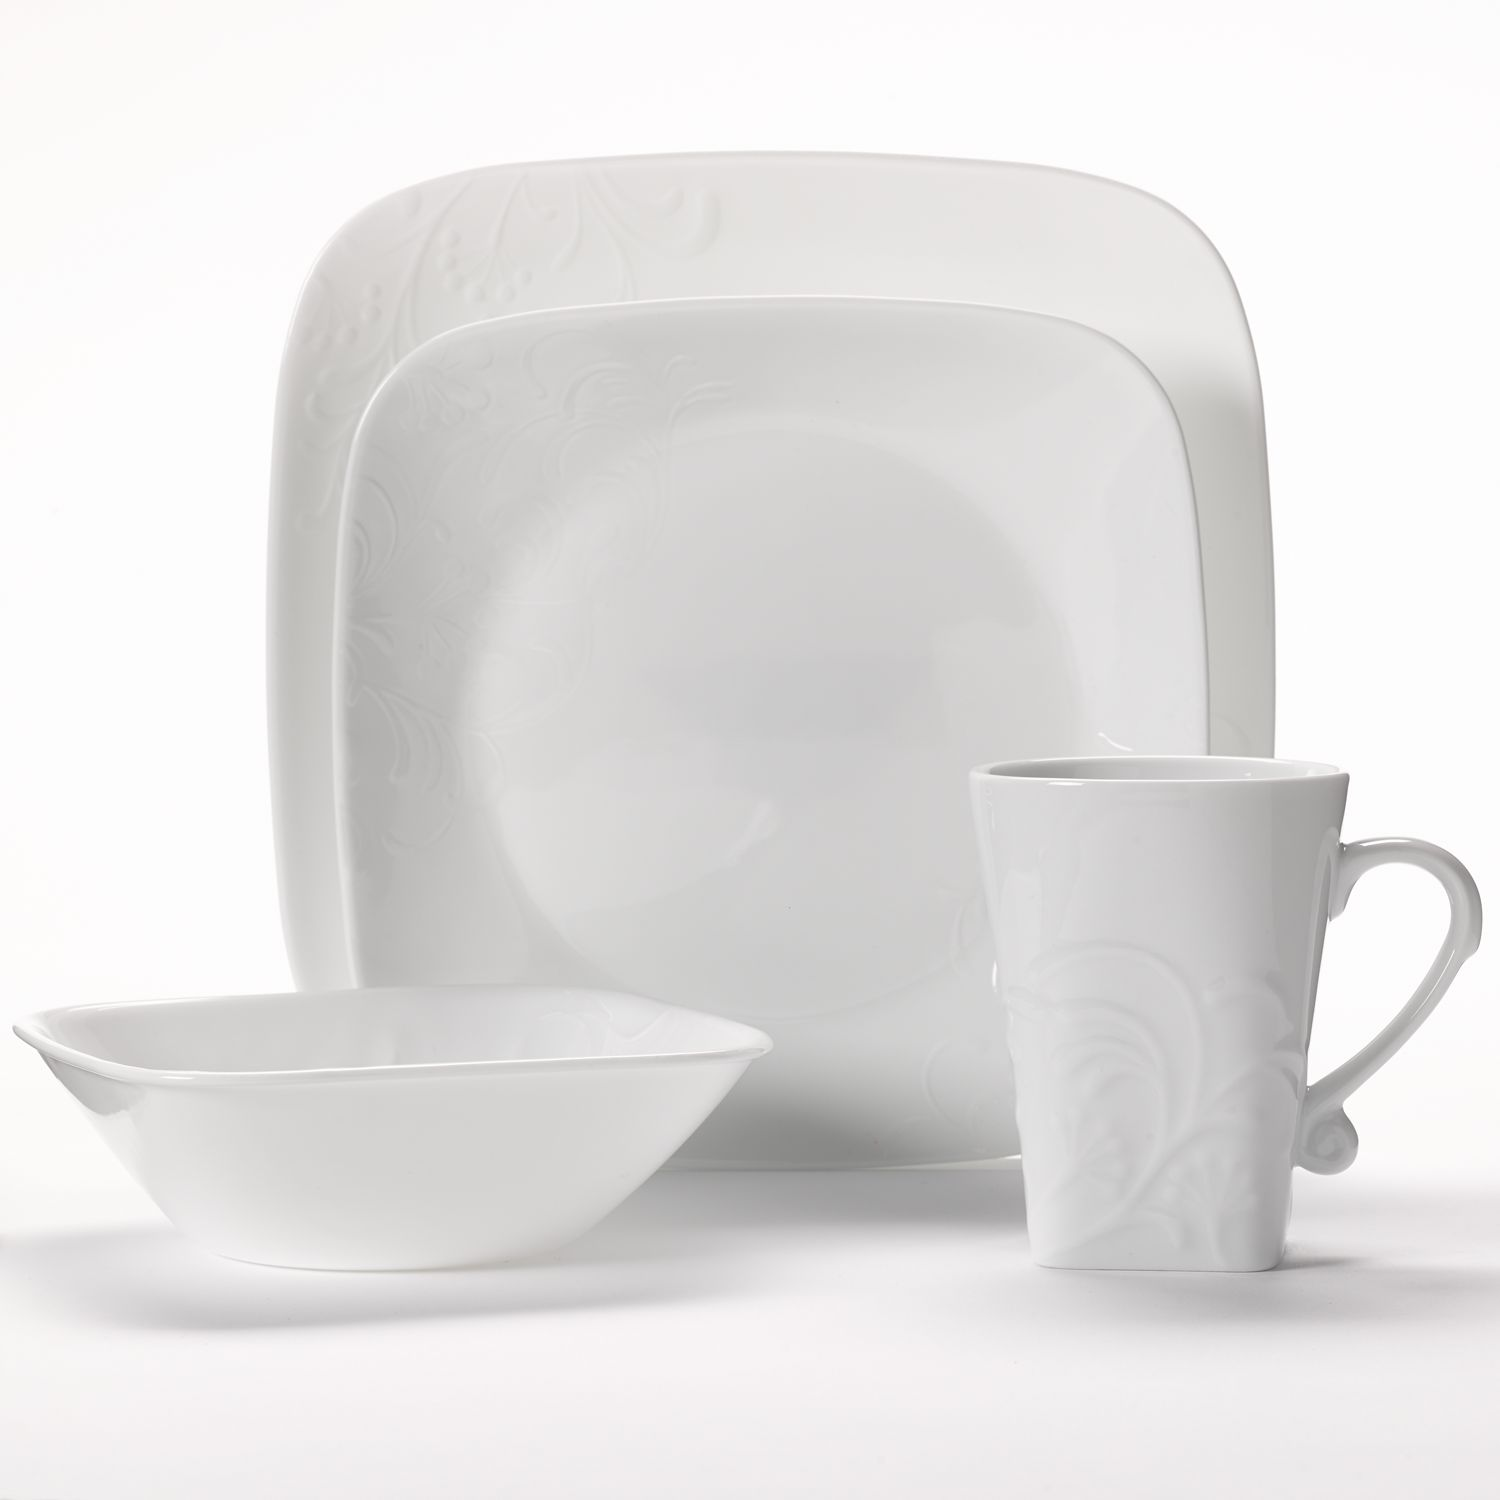 sc 1 st  Kohlu0027s & Corelle Cherish 16-pc. Dinnerware Set